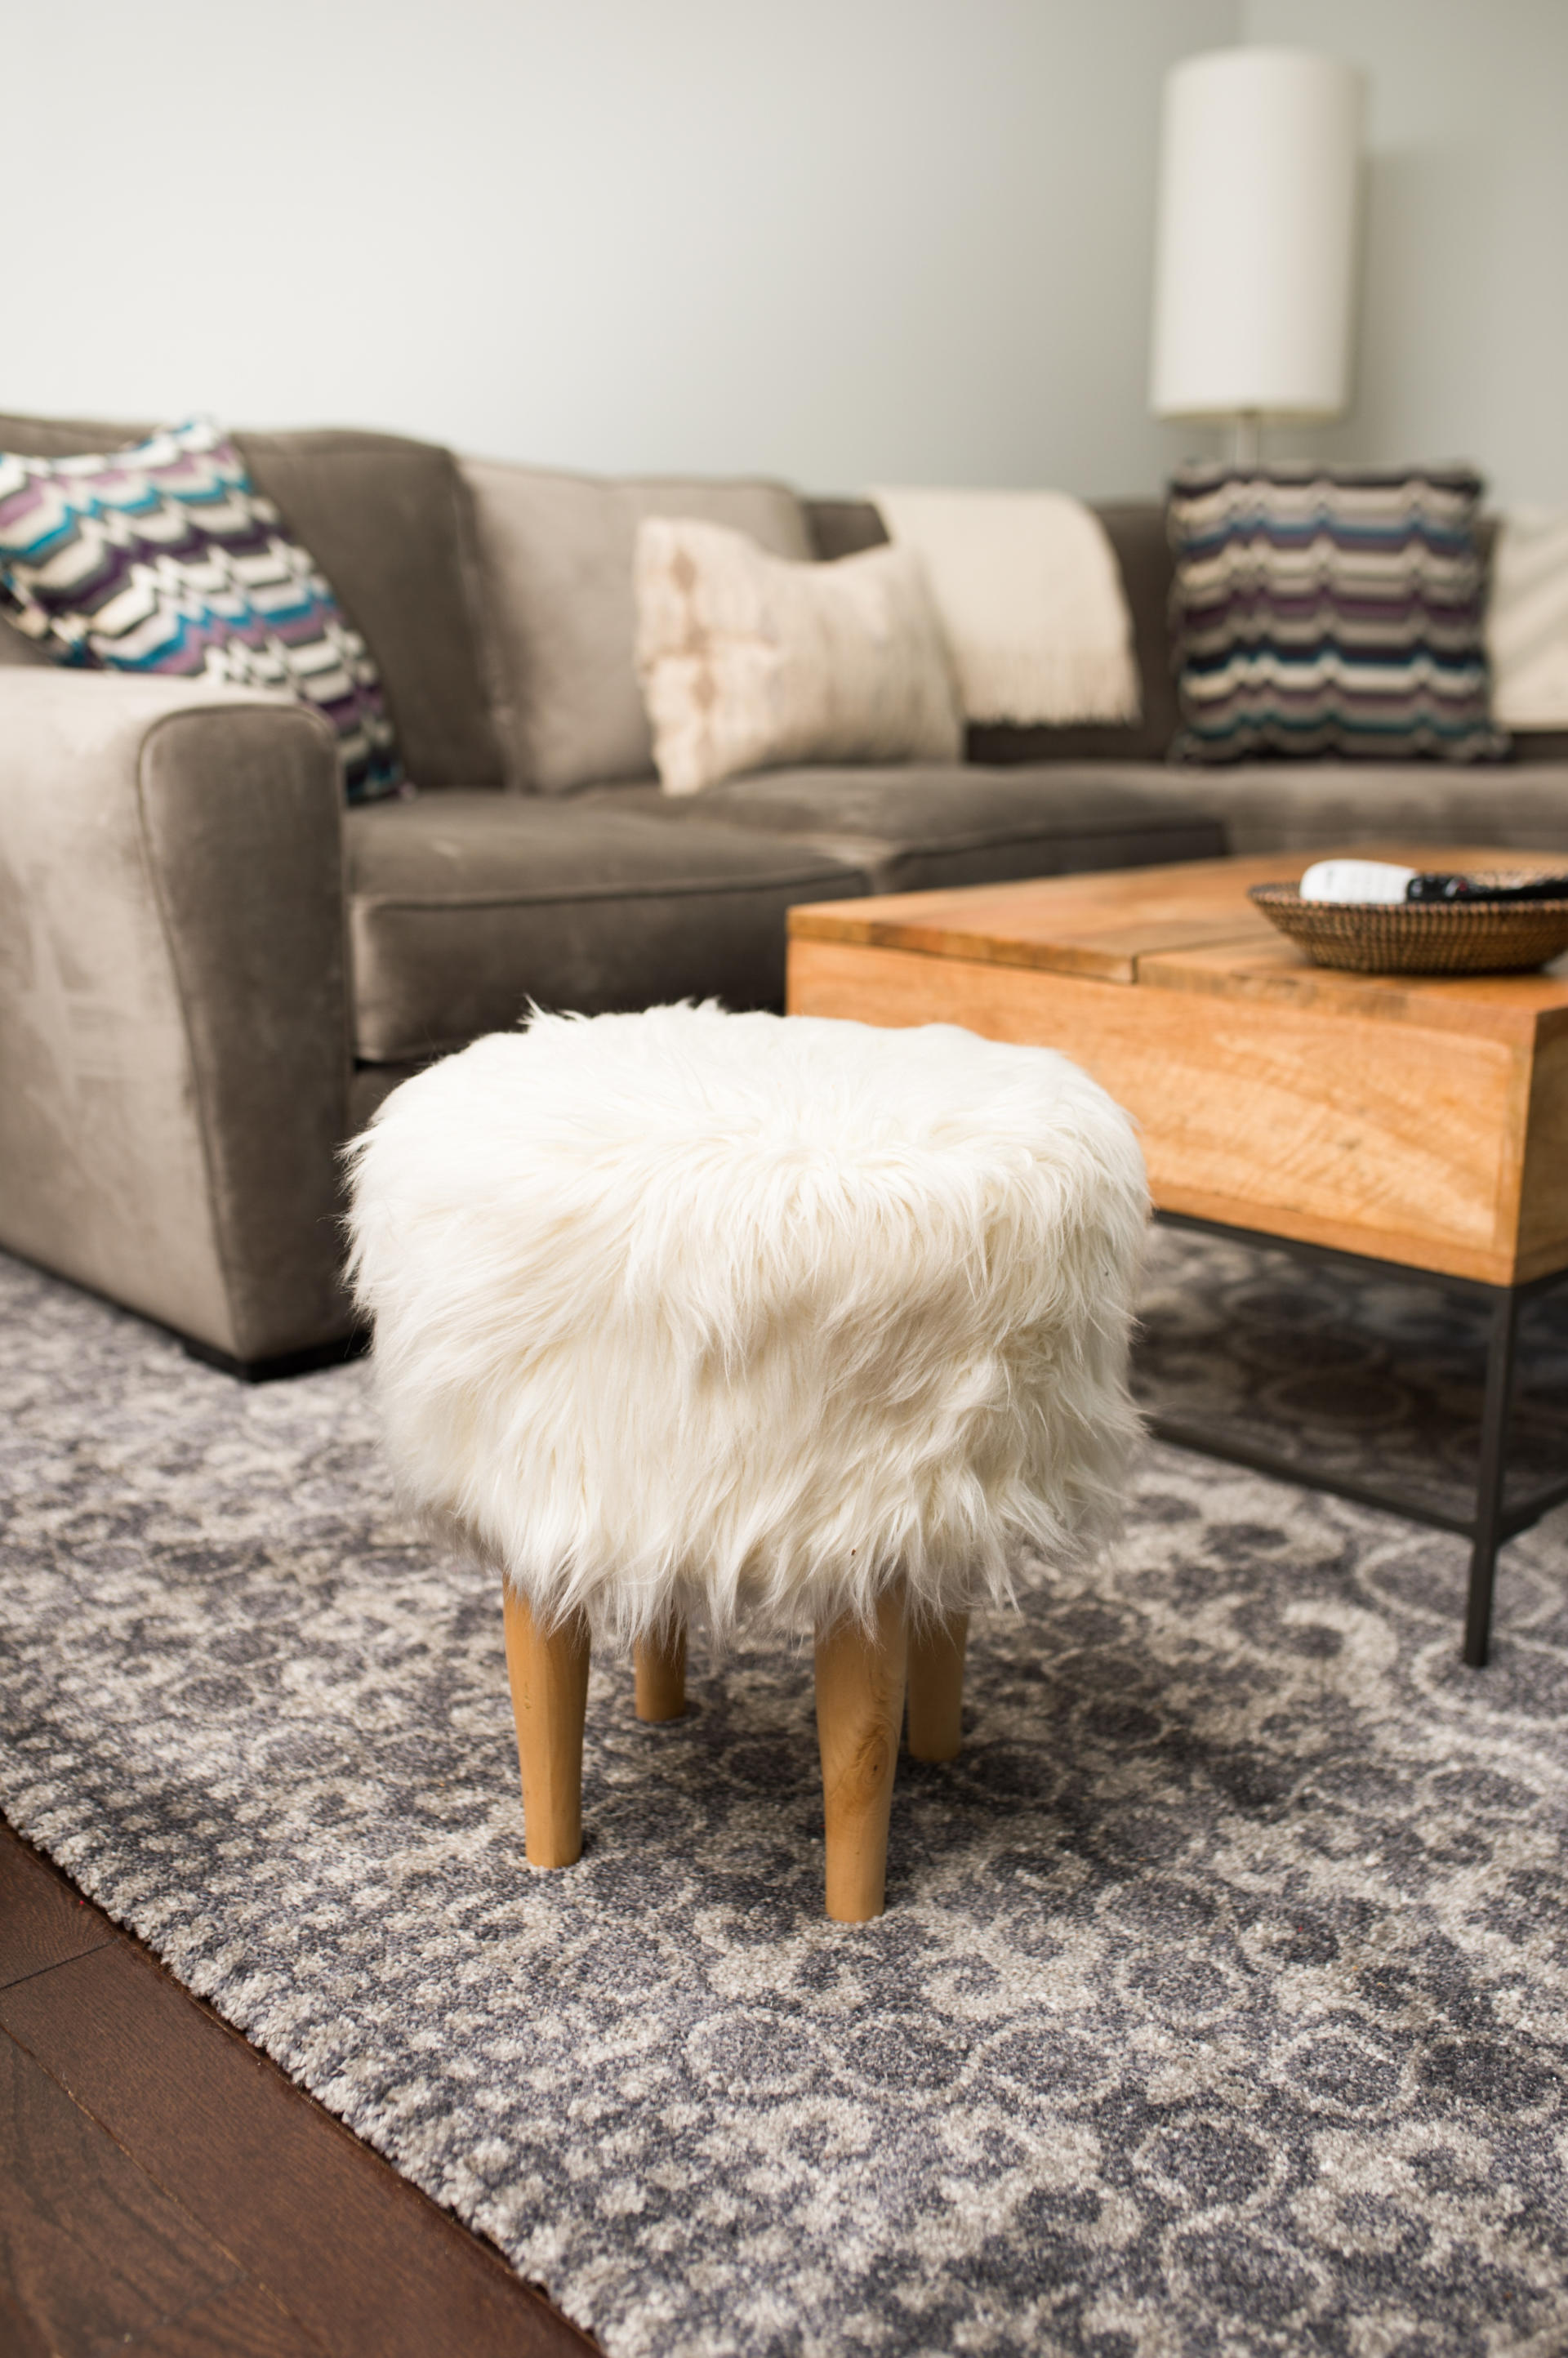 HOME: Our New Living Room with Raymour and Flanigan Sofa by New Jersey lifestyle blogger What's For Dinner Esq.